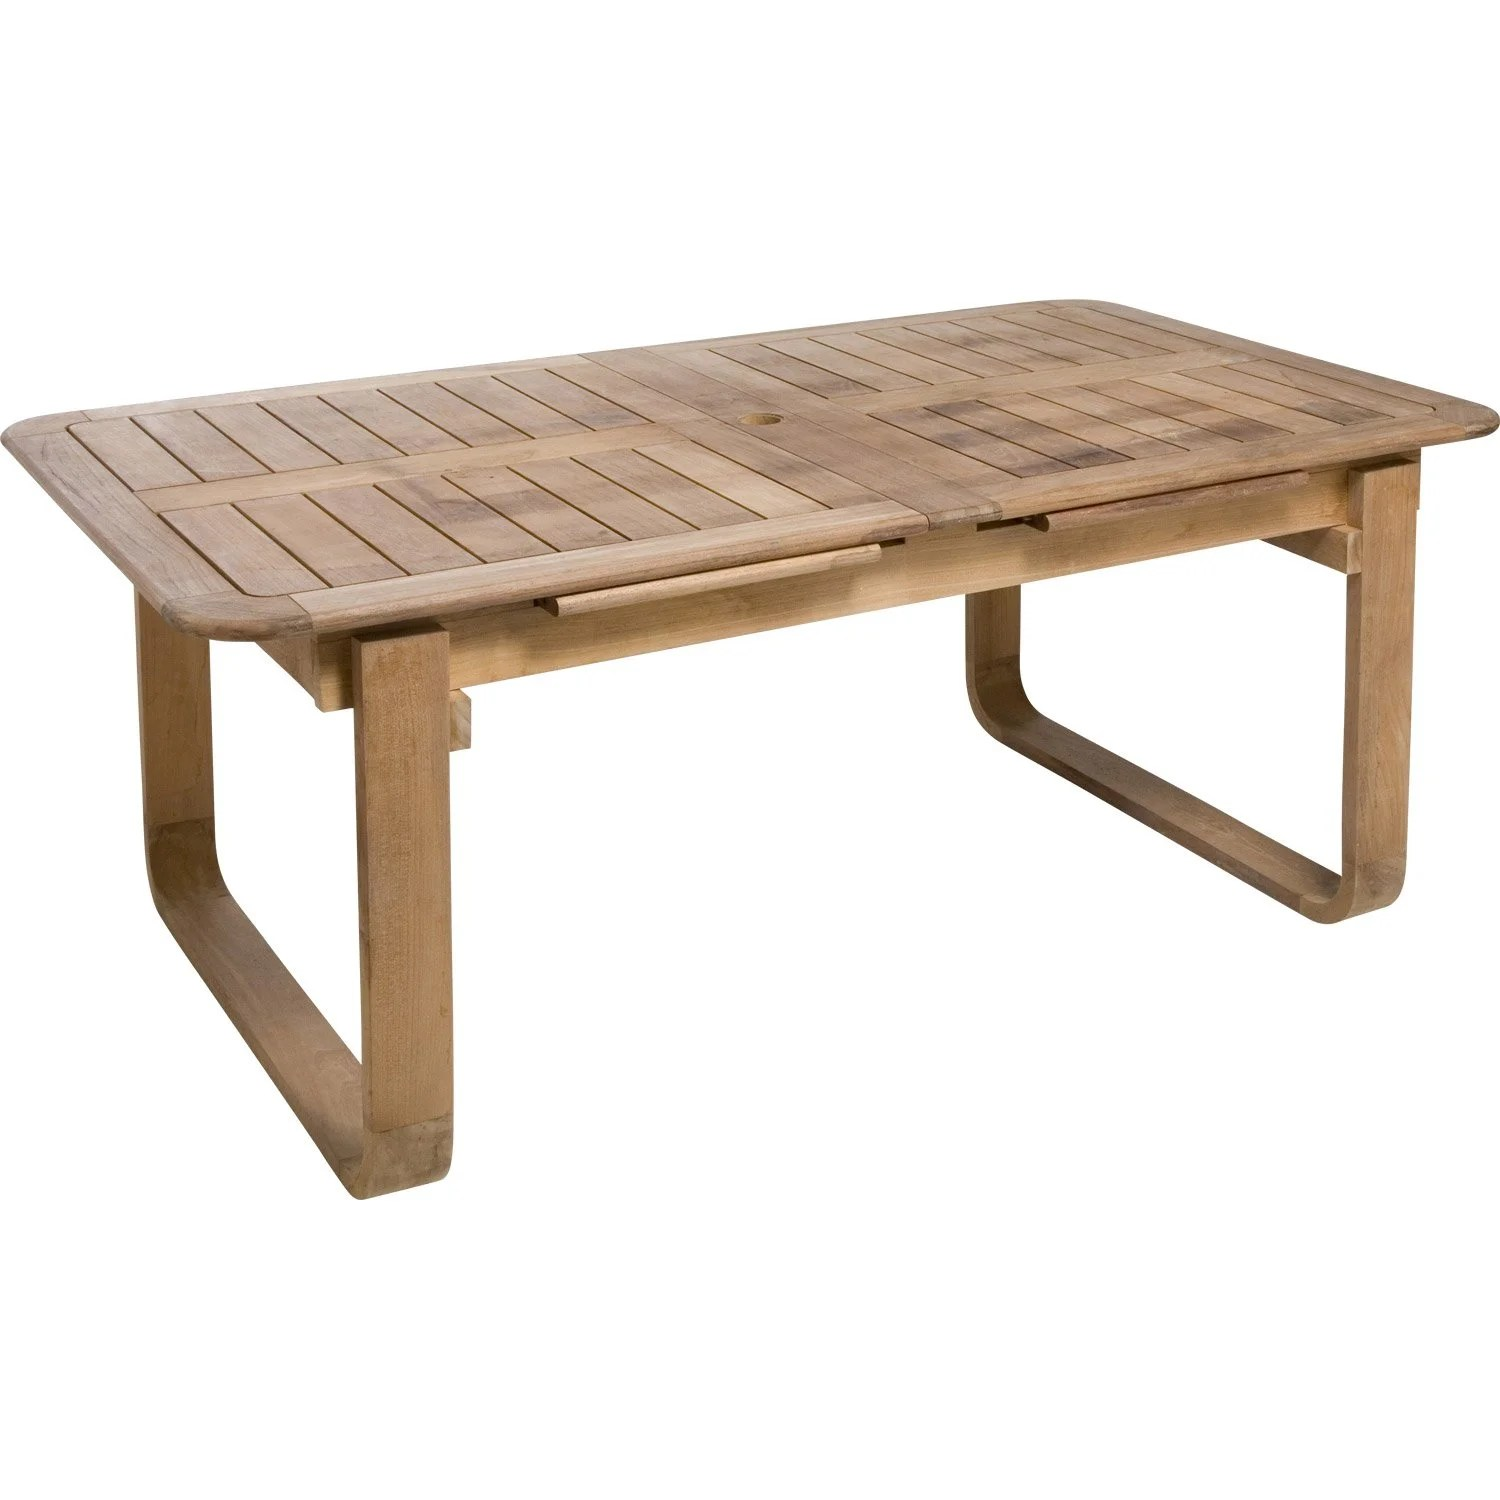 Table Fer Jardin Table De Jardin Naterial Resort Rectangulaire Naturel 6 8